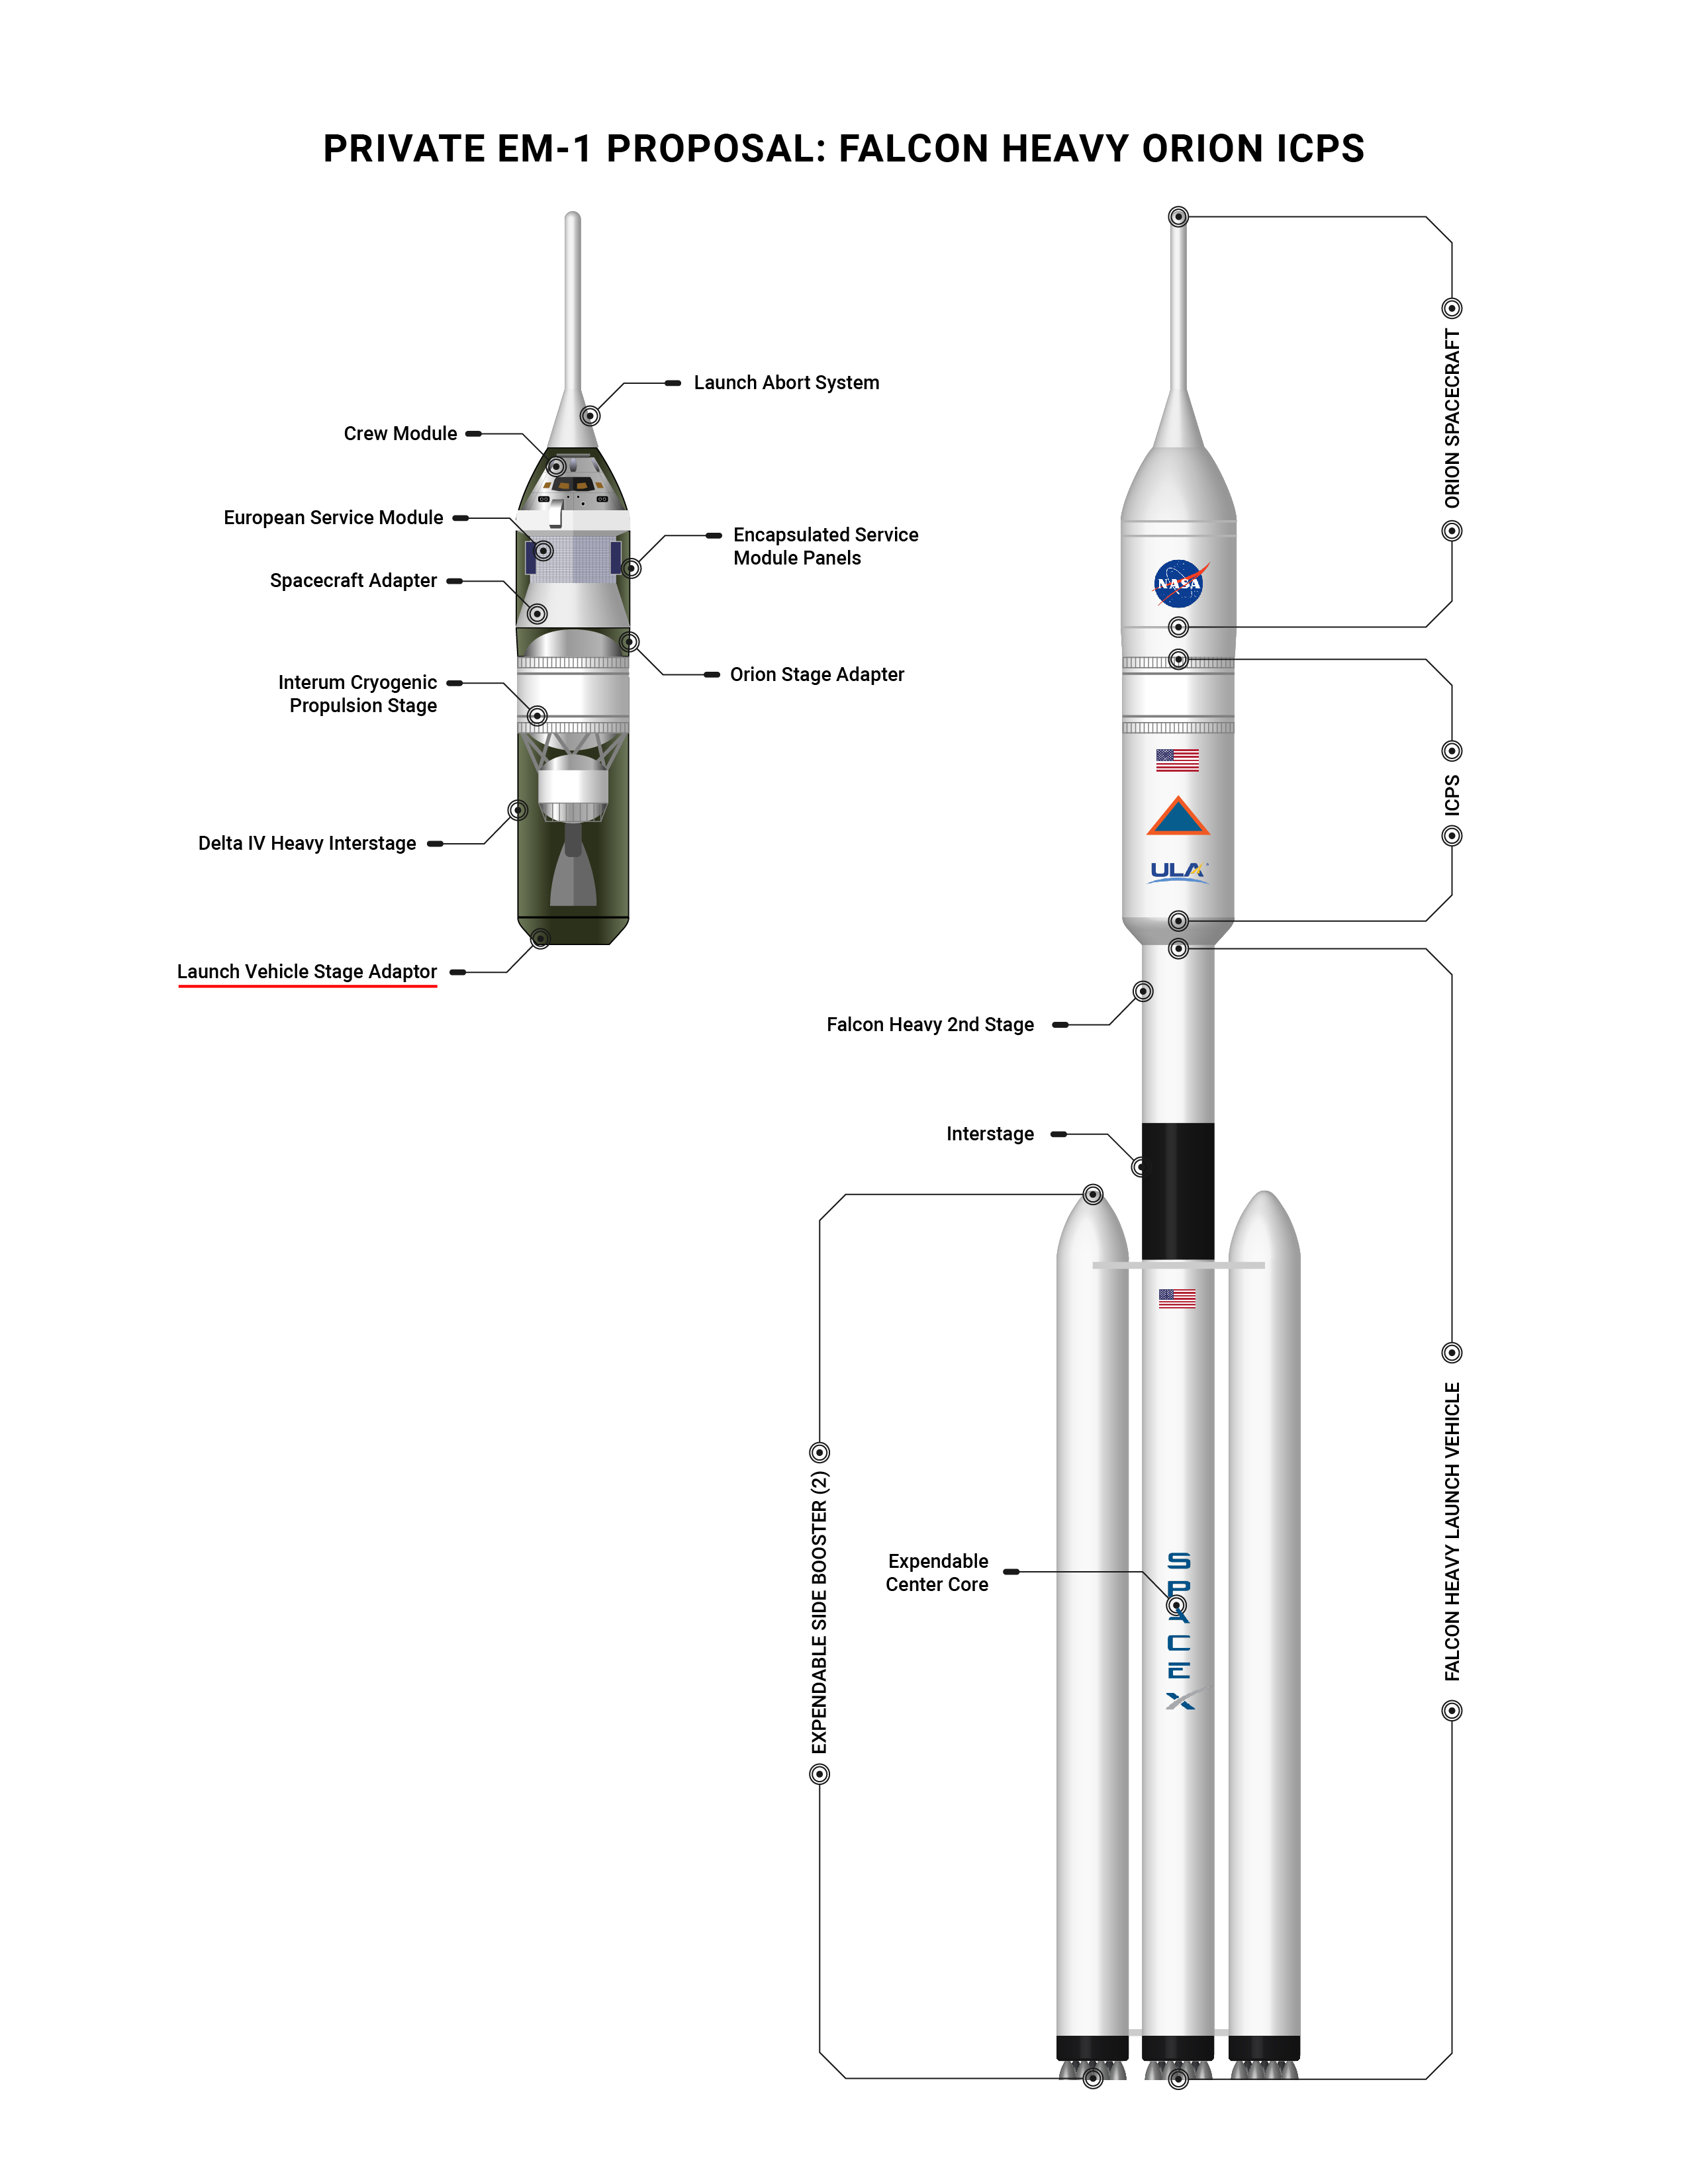 Private EM-1 Prposoal Falcon Heavy Orion ICPS (Reddit user DoYouWonda) 1